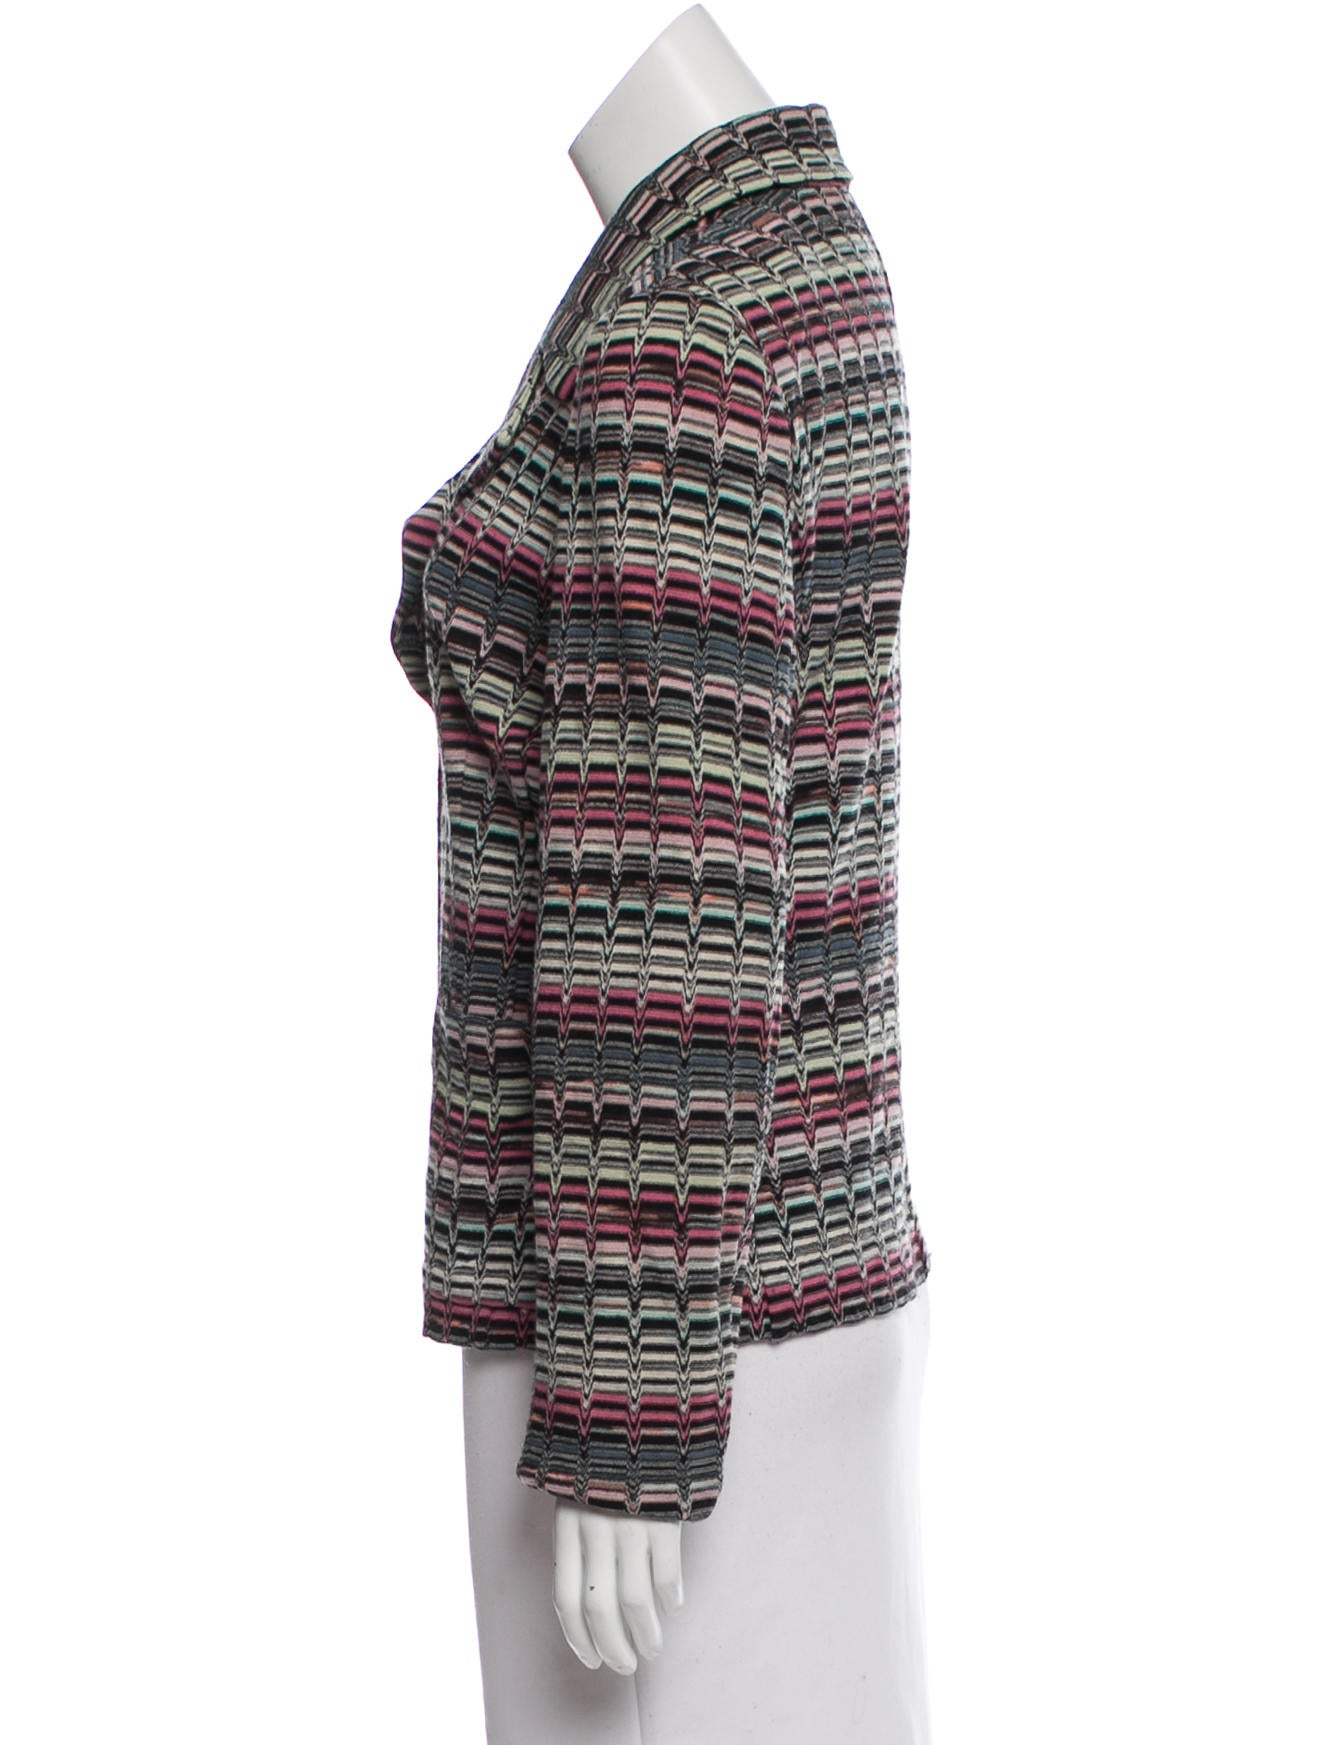 Missoni Pattern Knit Jacket - Clothing - MIS41815 The RealReal